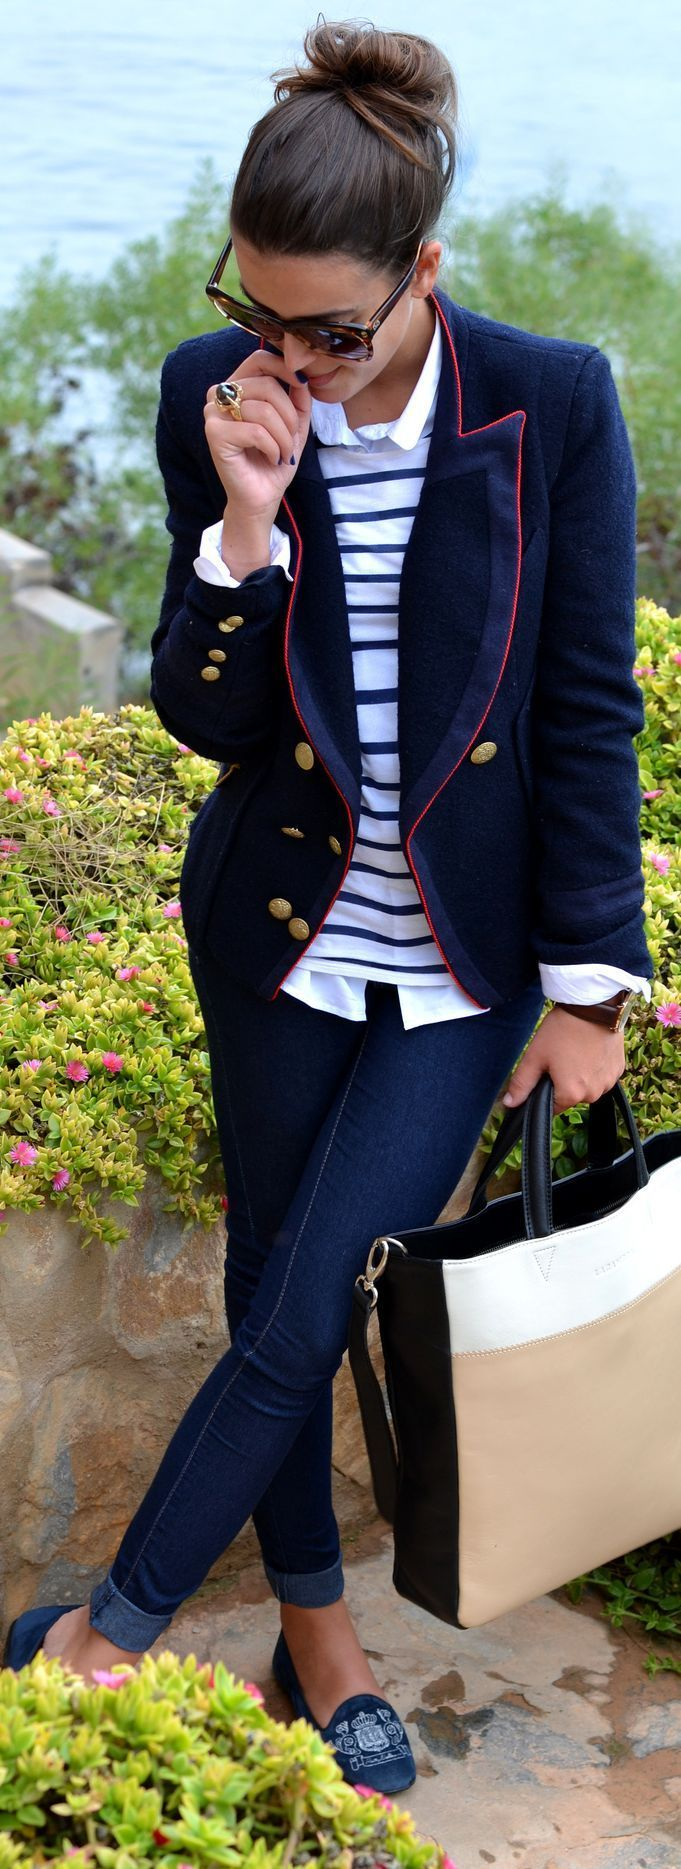 Pair this military blazer to any suit or skirt to instantly get a unique formal look!